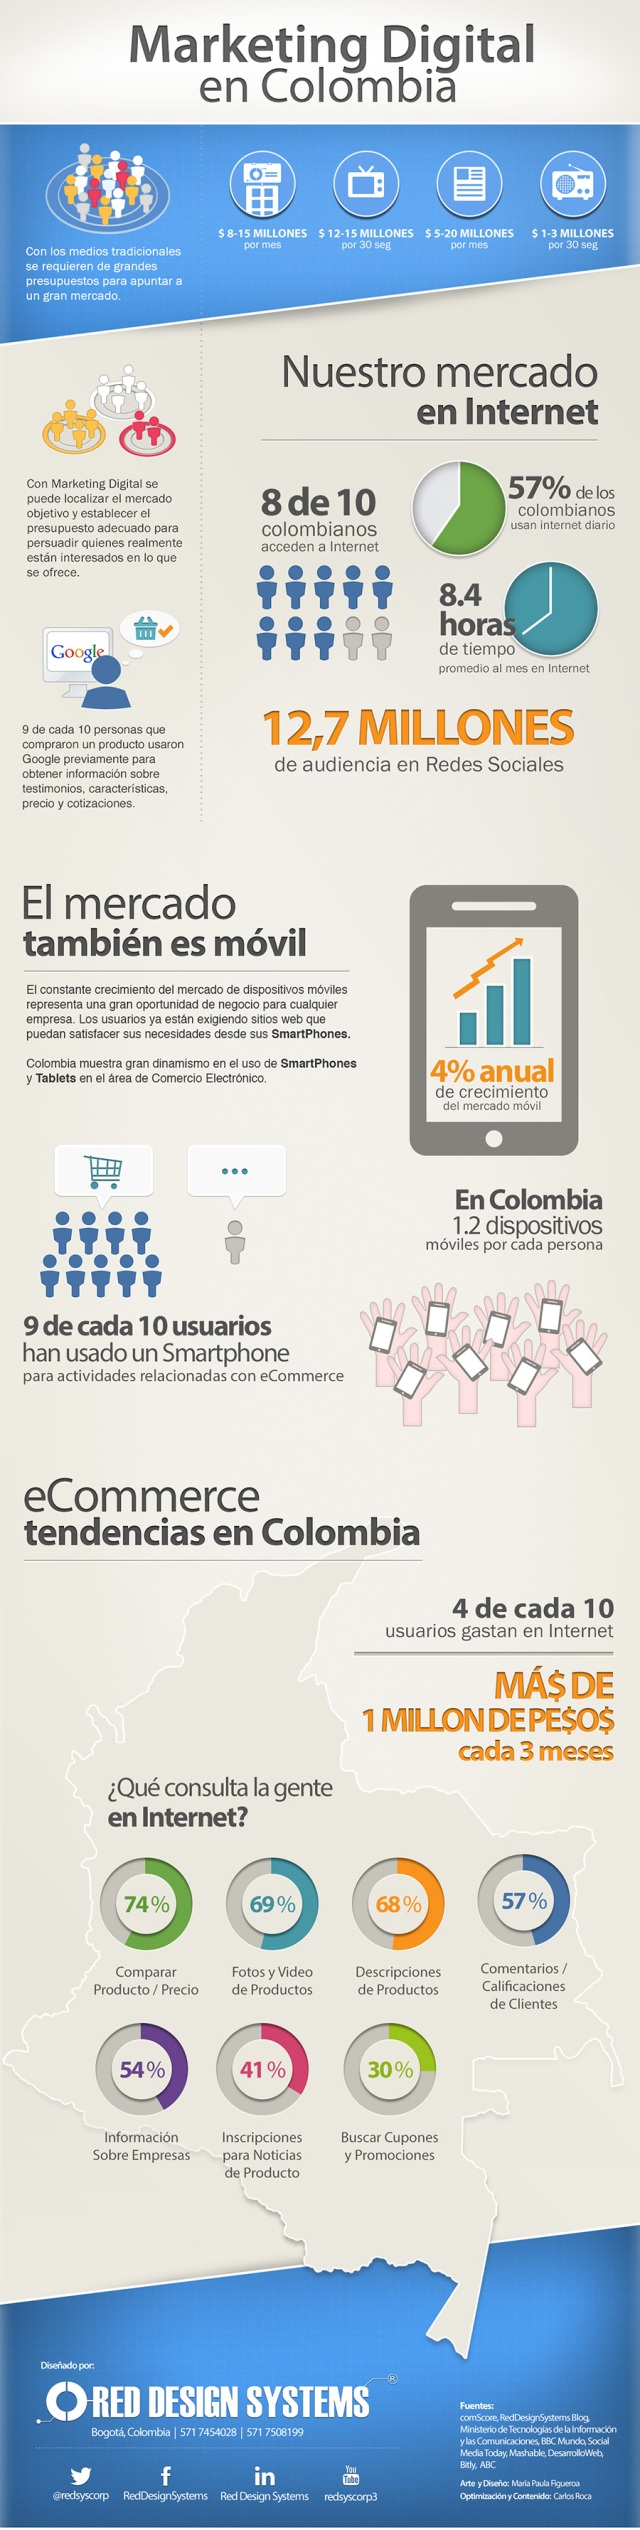 Marketing digital en Colombia